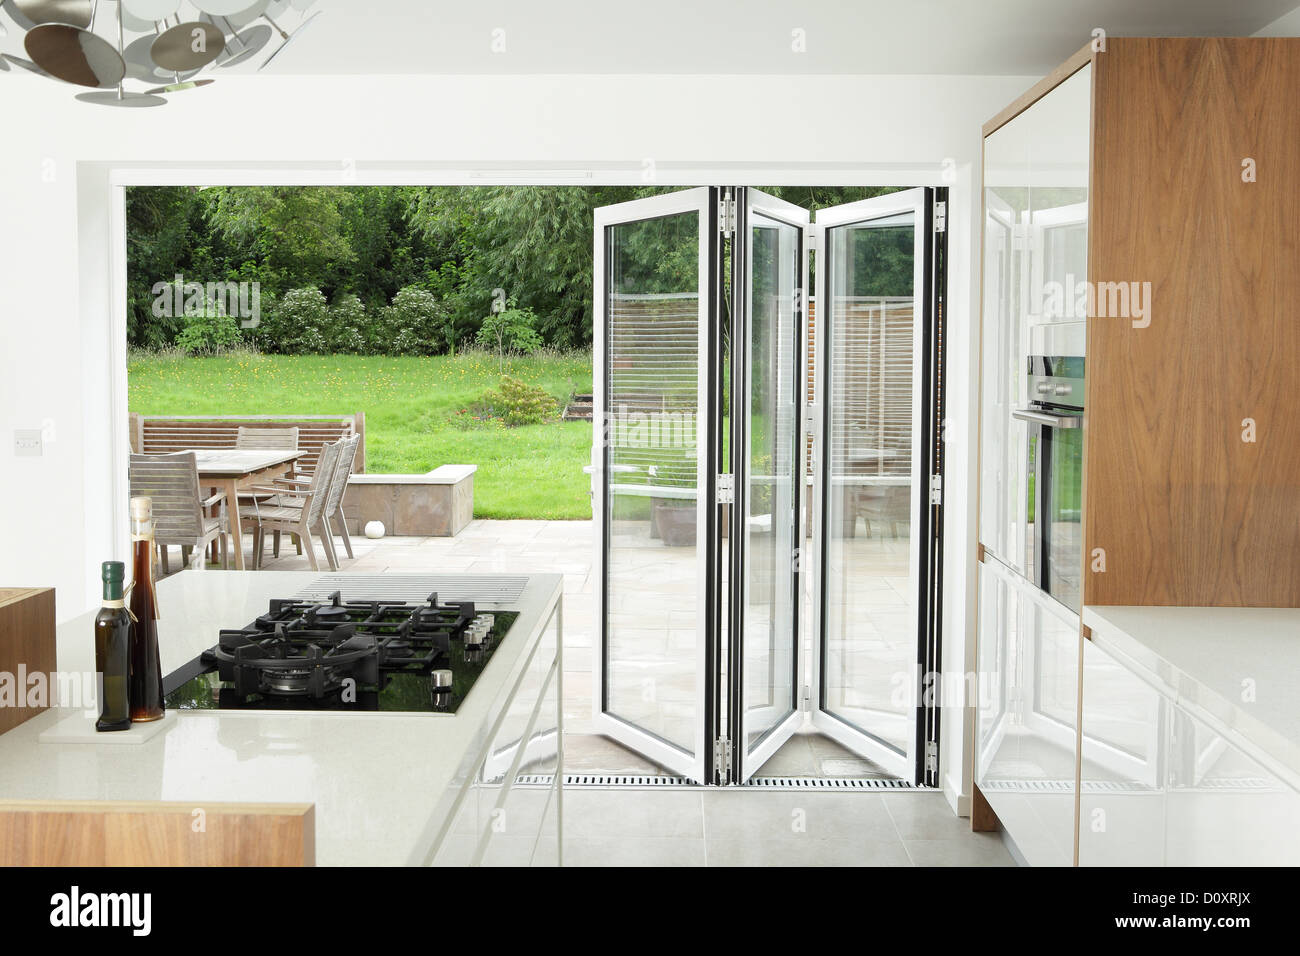 Kitchen with open patio doors Stock Photo, Royalty Free